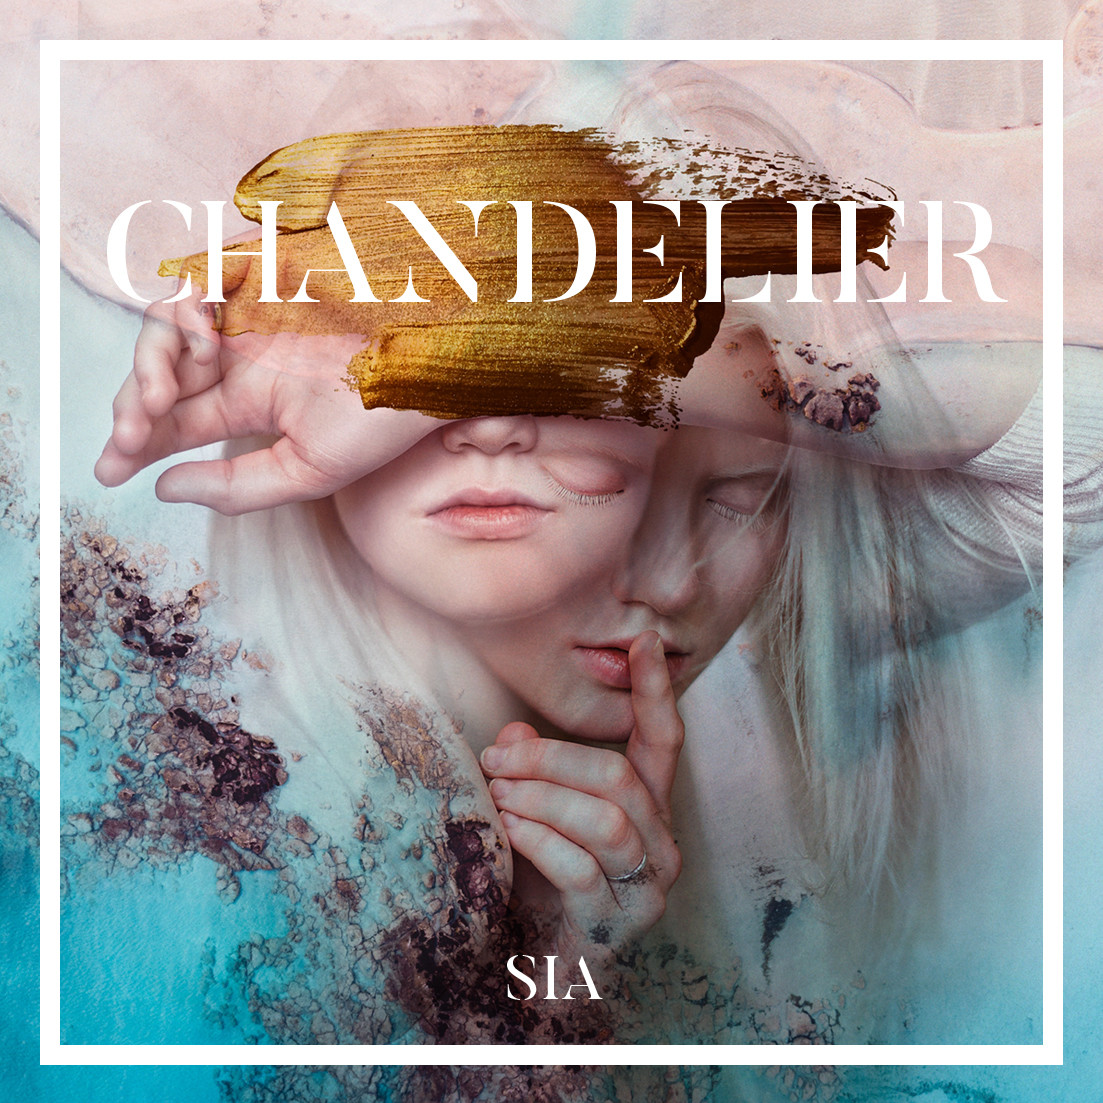 ArtStation - Sia - Chandelier, i Manipulate